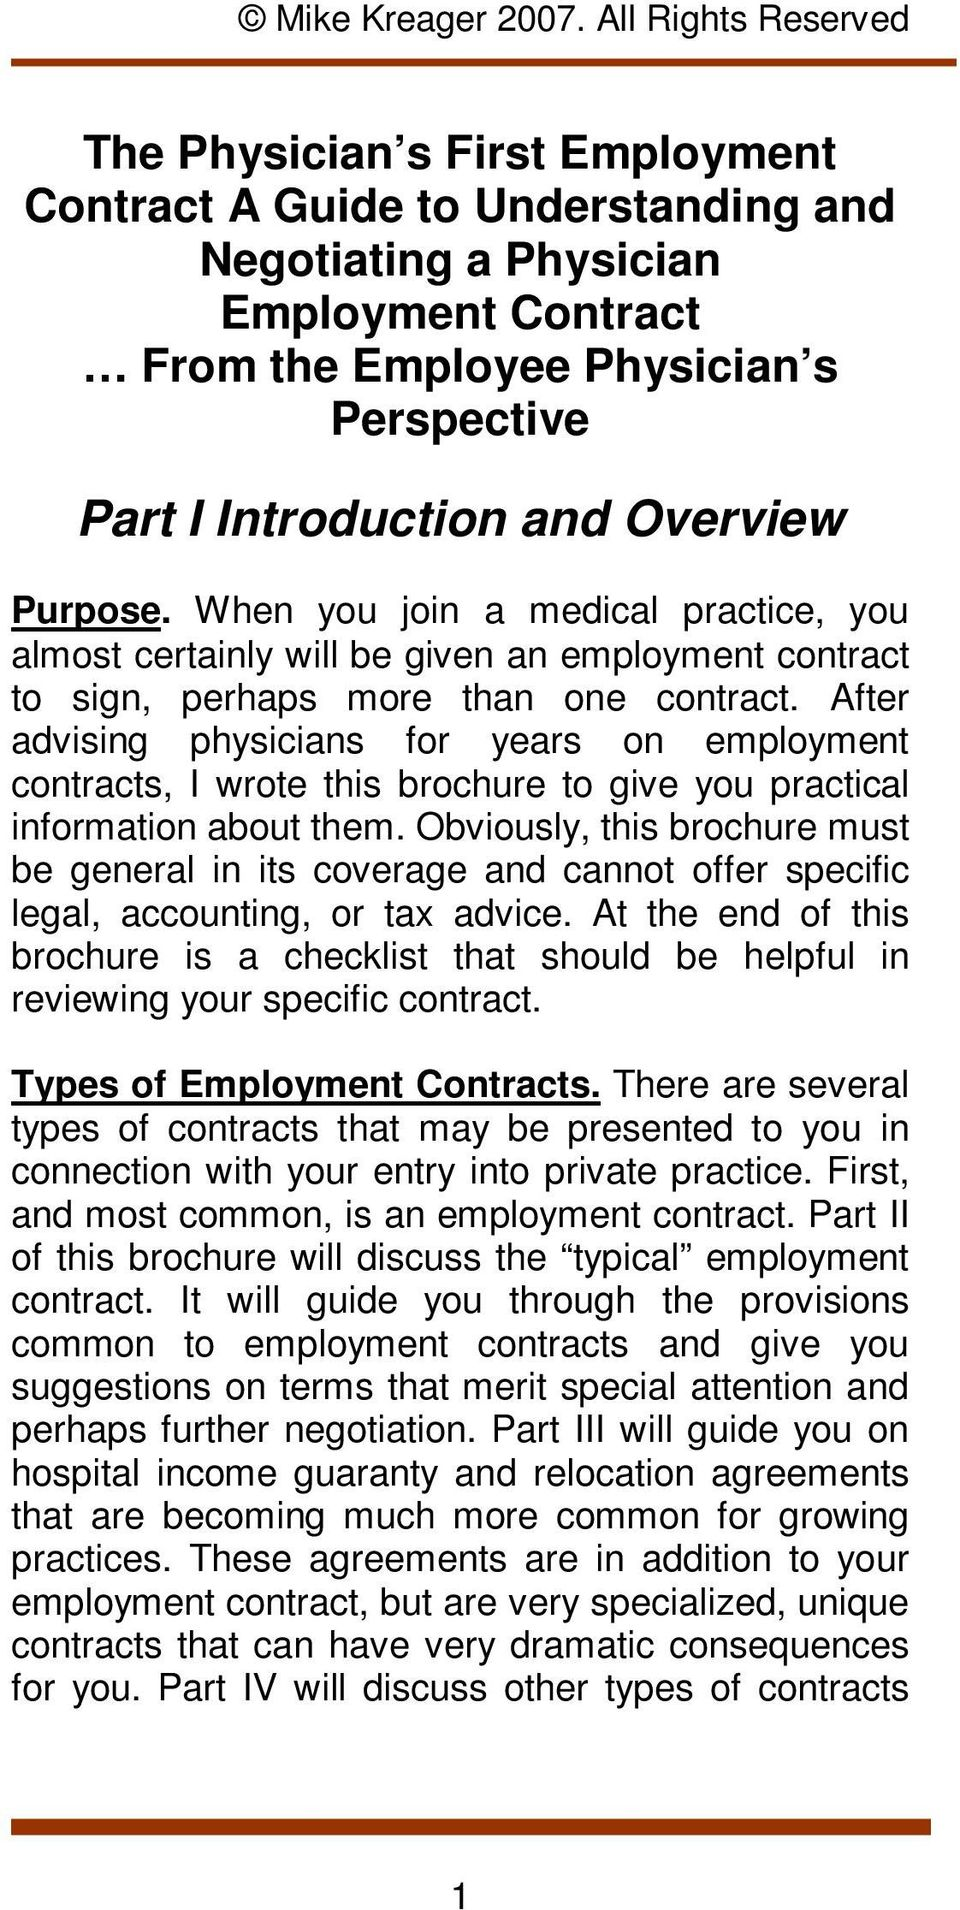 After advising physicians for years on employment contracts, I wrote this brochure to give you practical information about them.